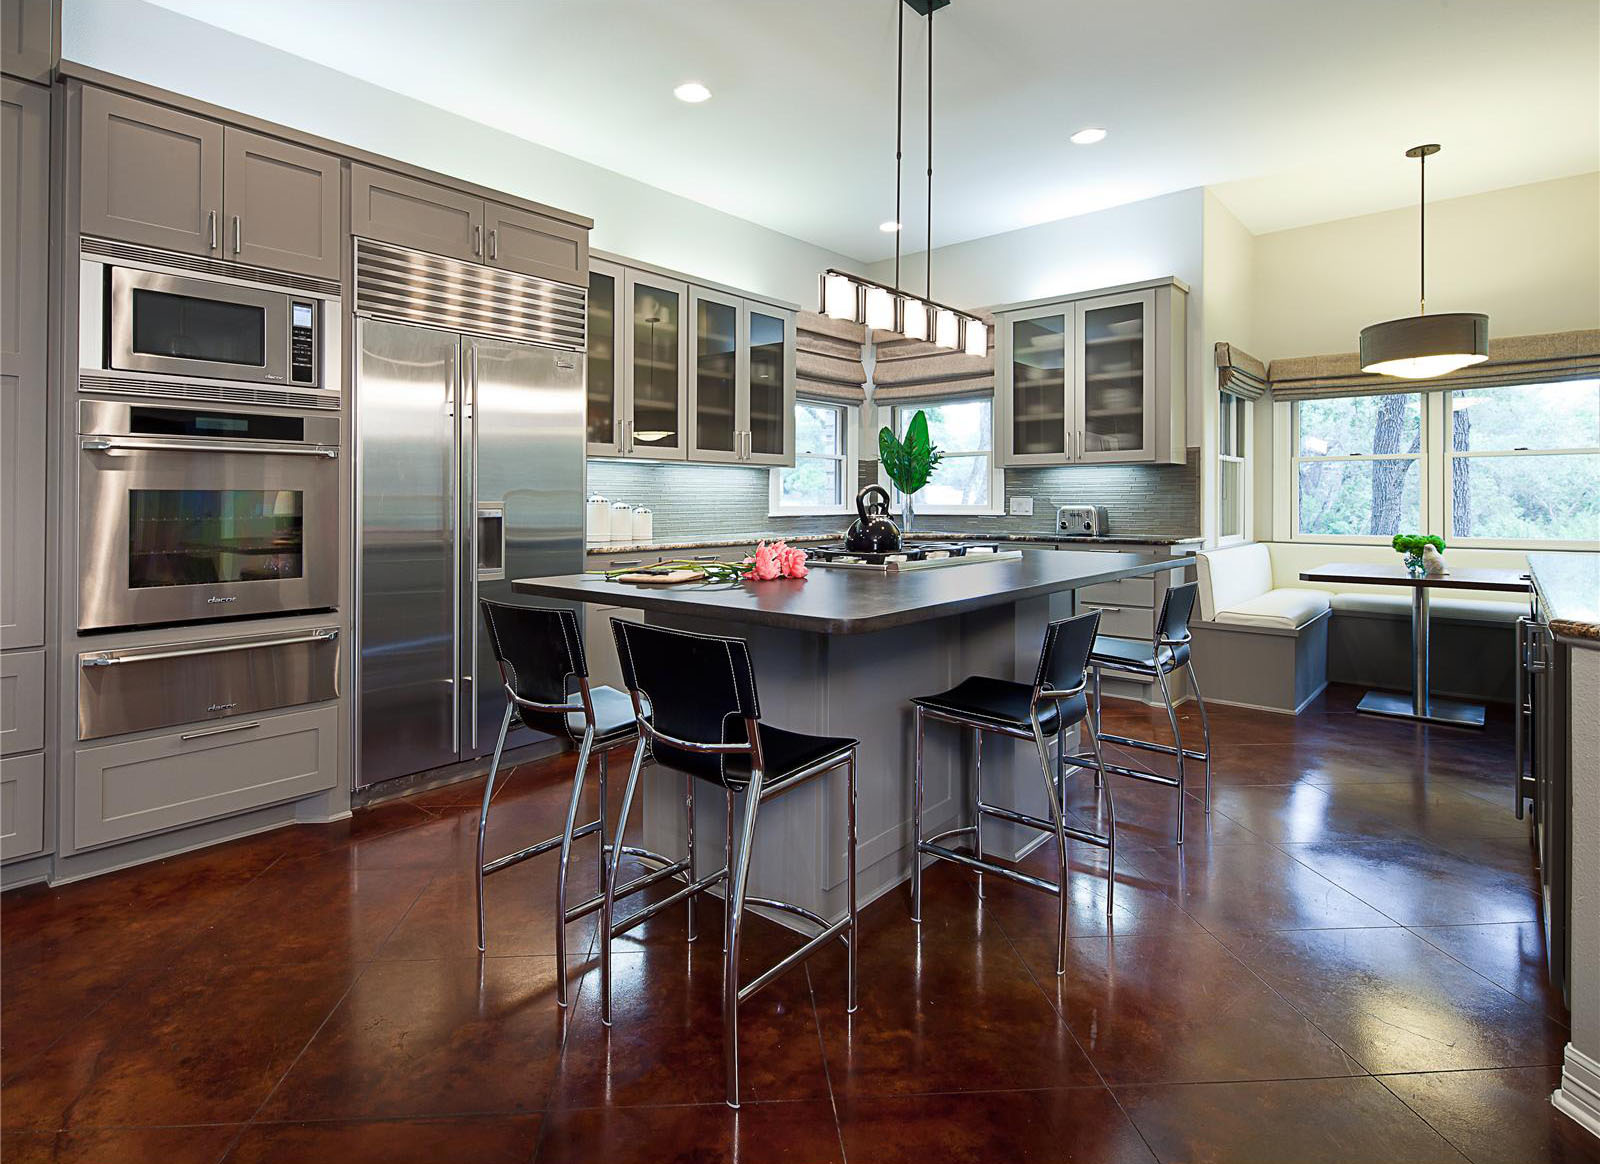 Contemporary kitchen design atlanta - Contemporary Kitchens Ideas